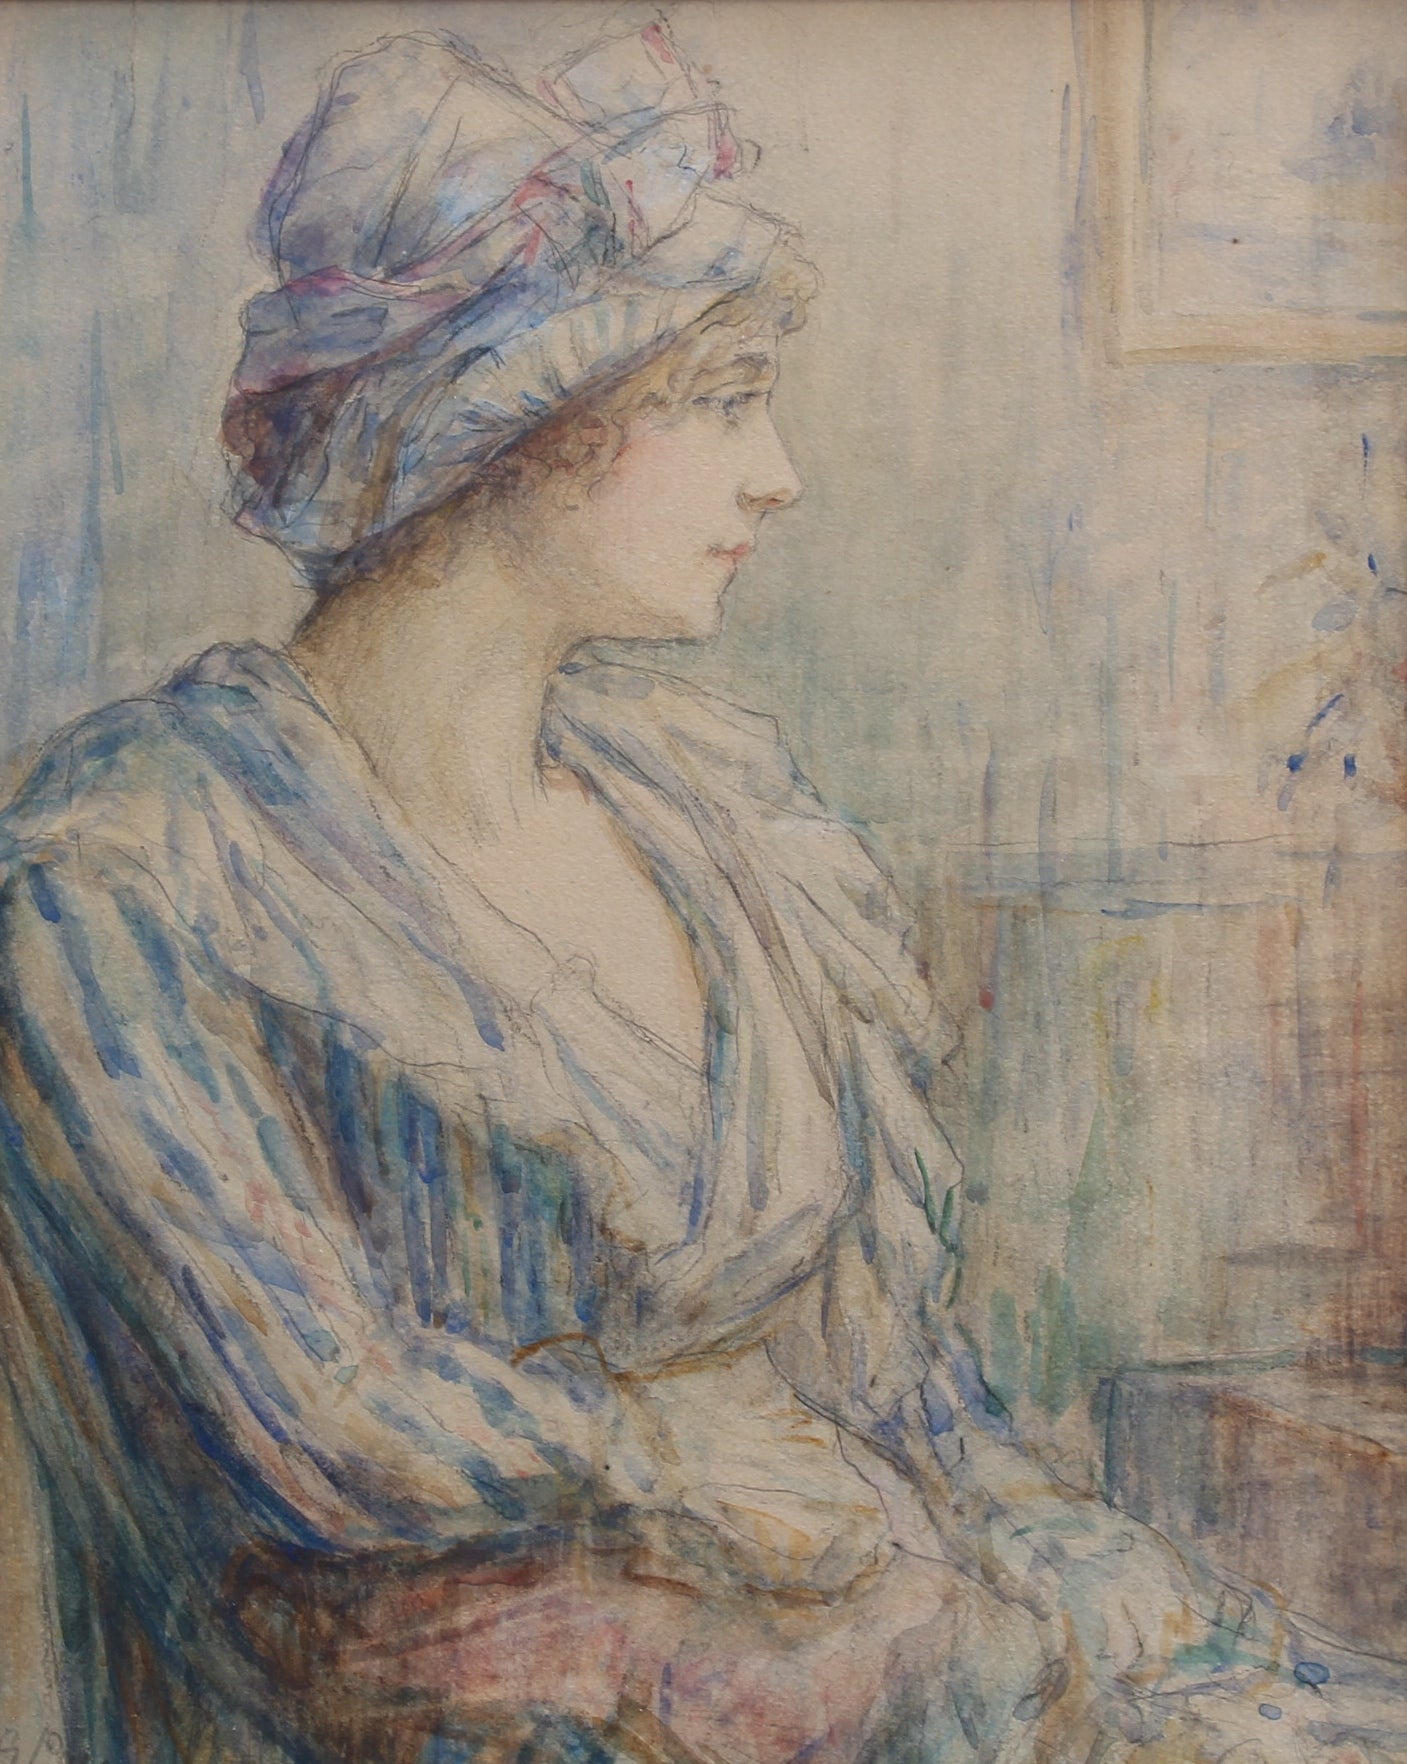 'Portrait of a Young Woman in Bust' by Sara Page (early 1900s)